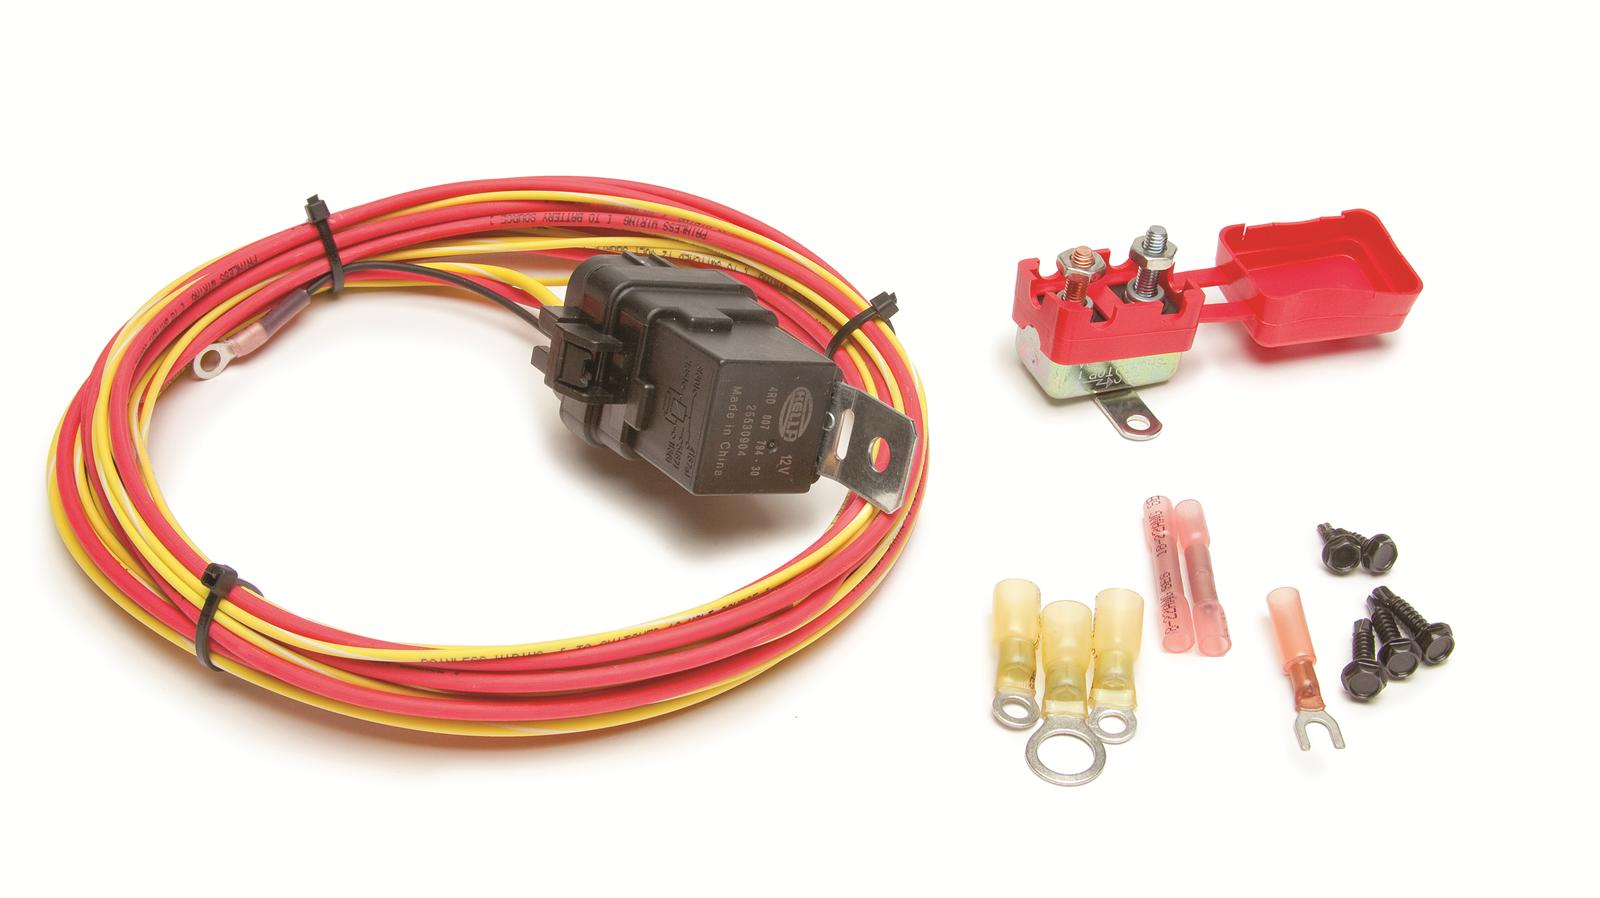 hight resolution of painless performance universal fuel pump relay kits 30131 free painless performance universal fuel pump relay kits 50102 painless wiring fuel pump relay